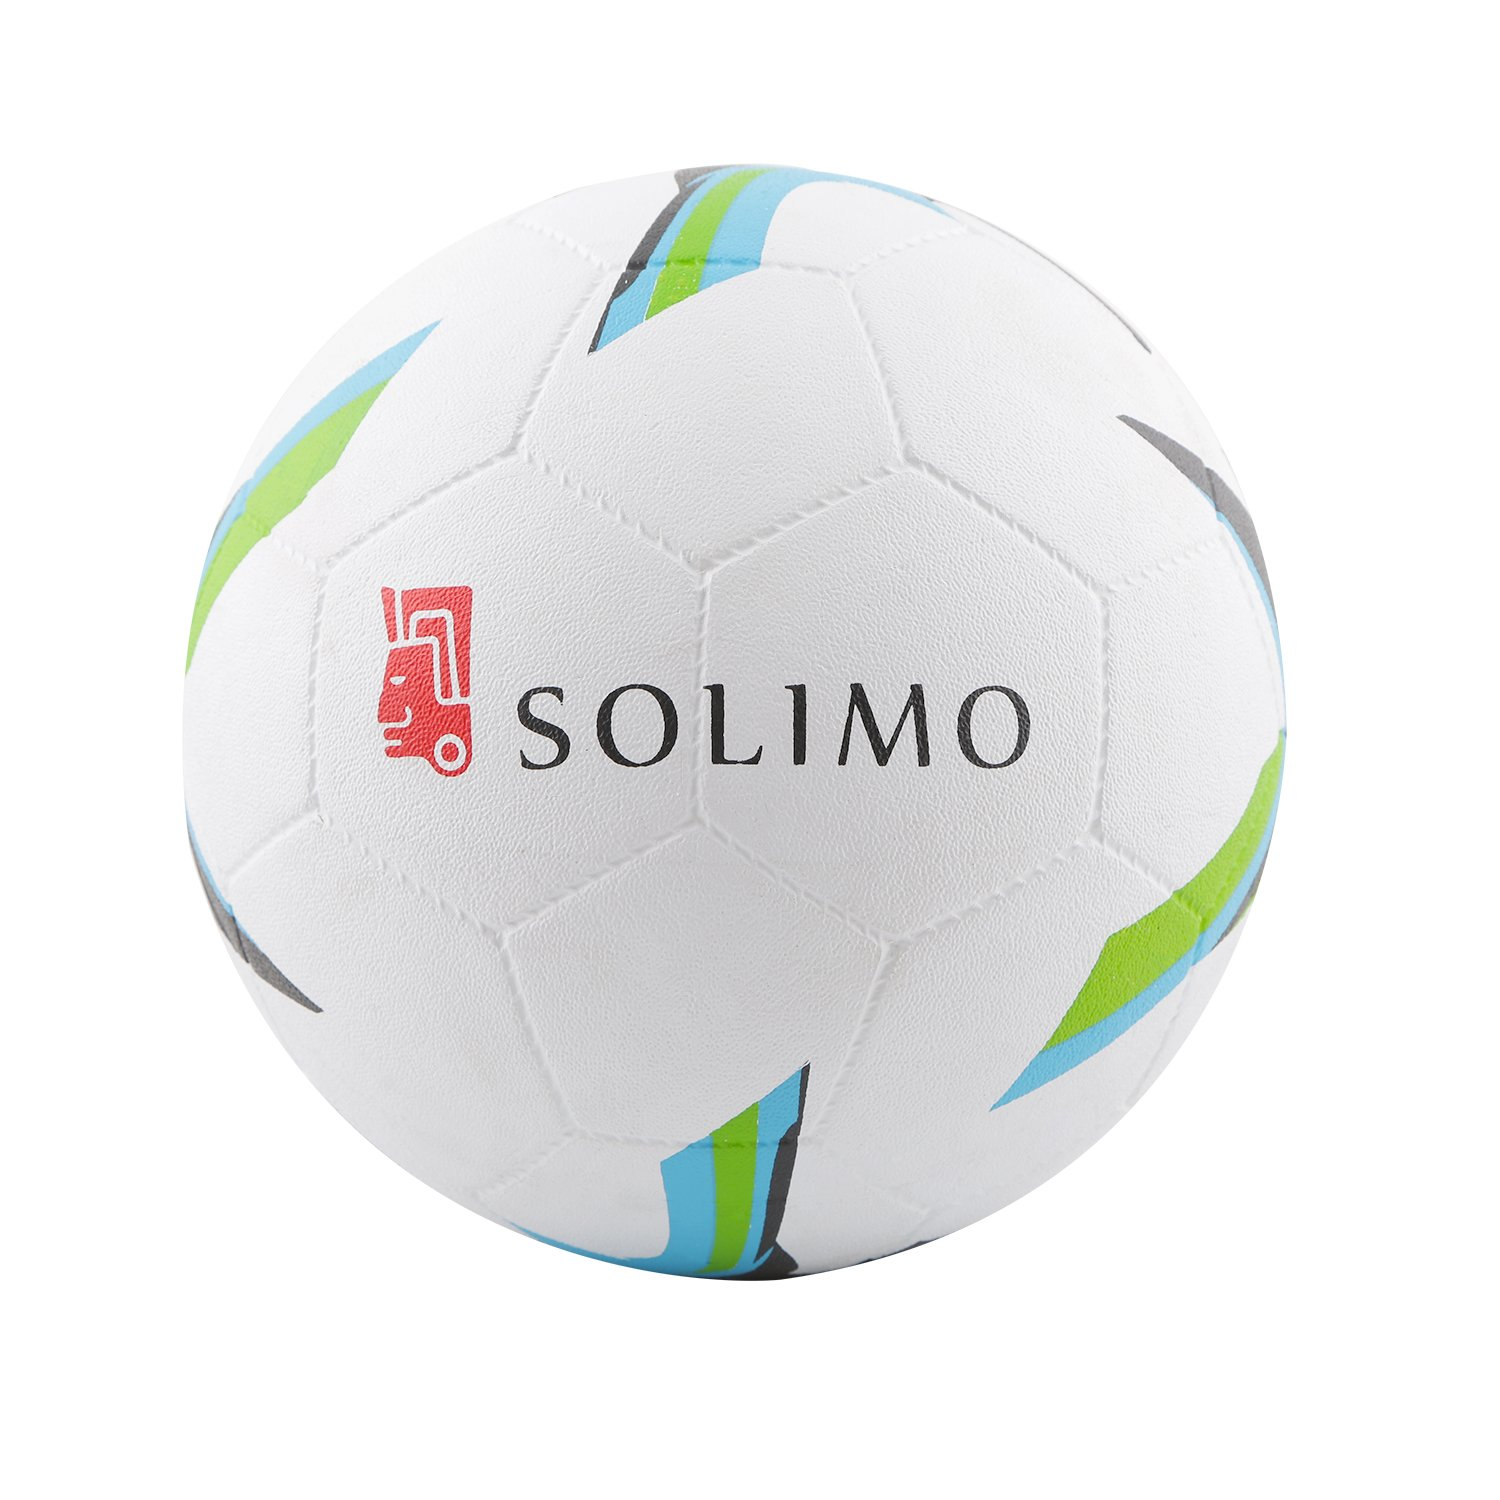 Solimo Moulded Rubber Football